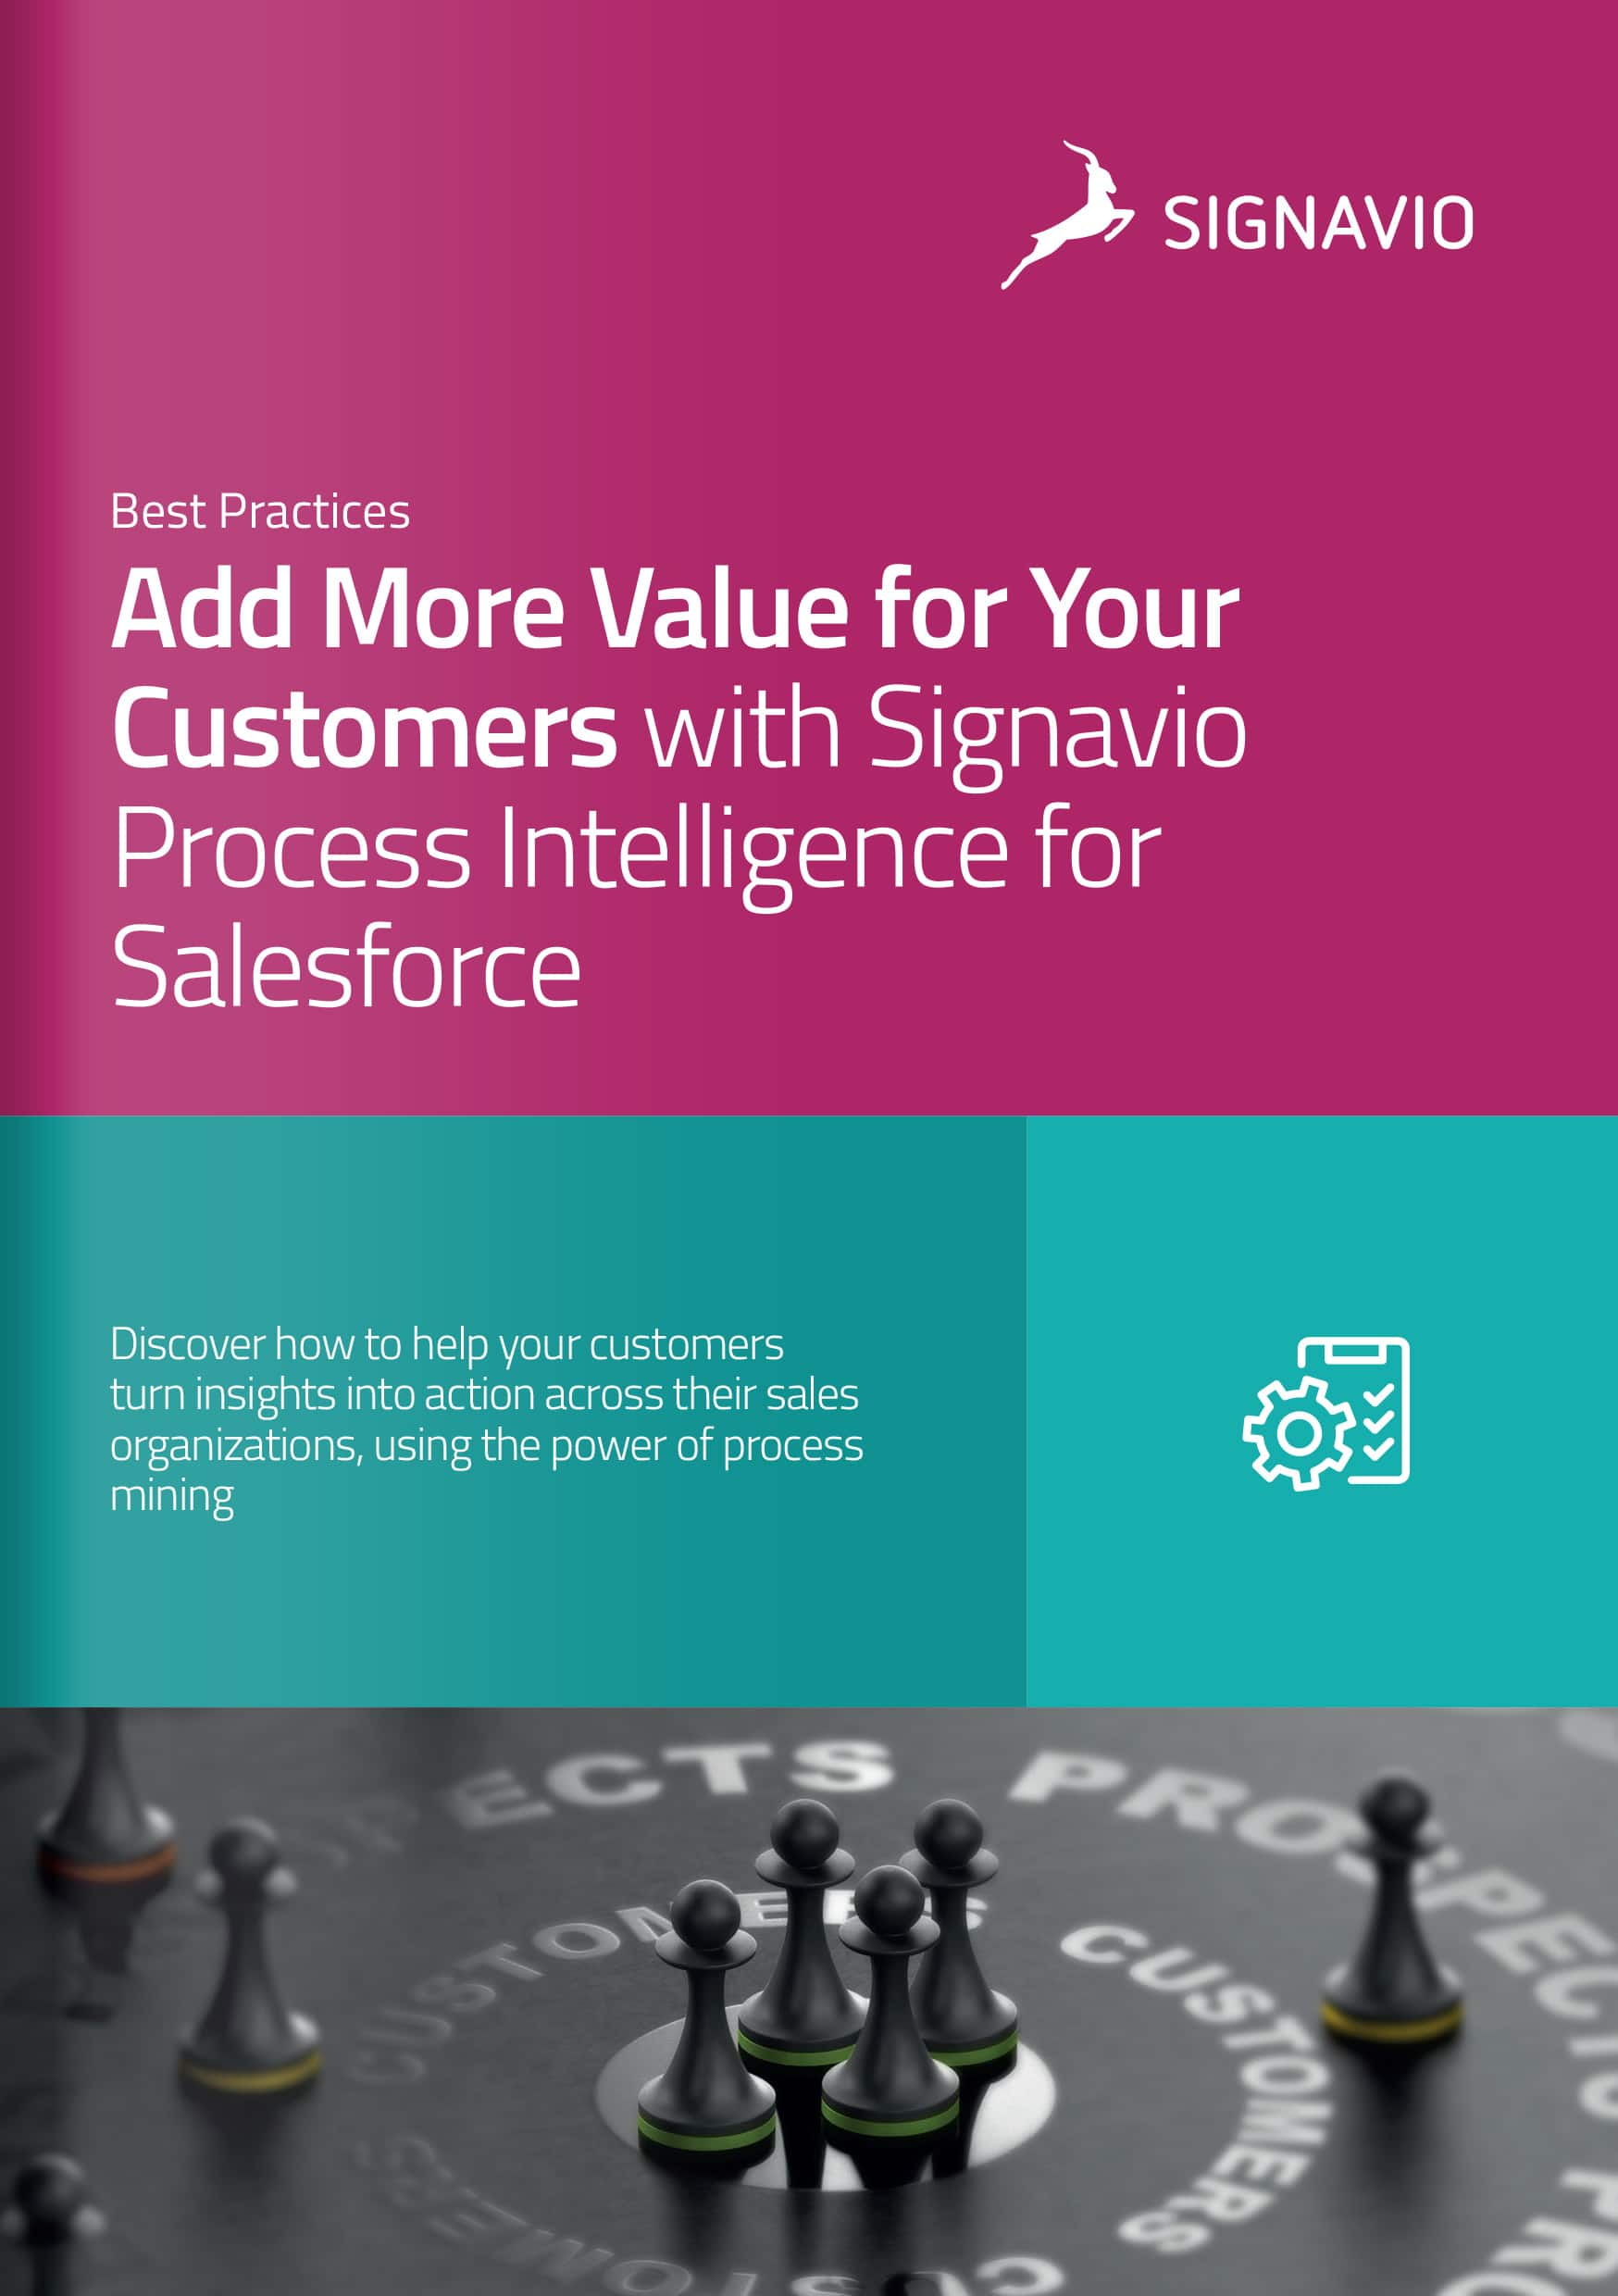 Cover image Signavio Process Intelligence for Salesforce partner resource